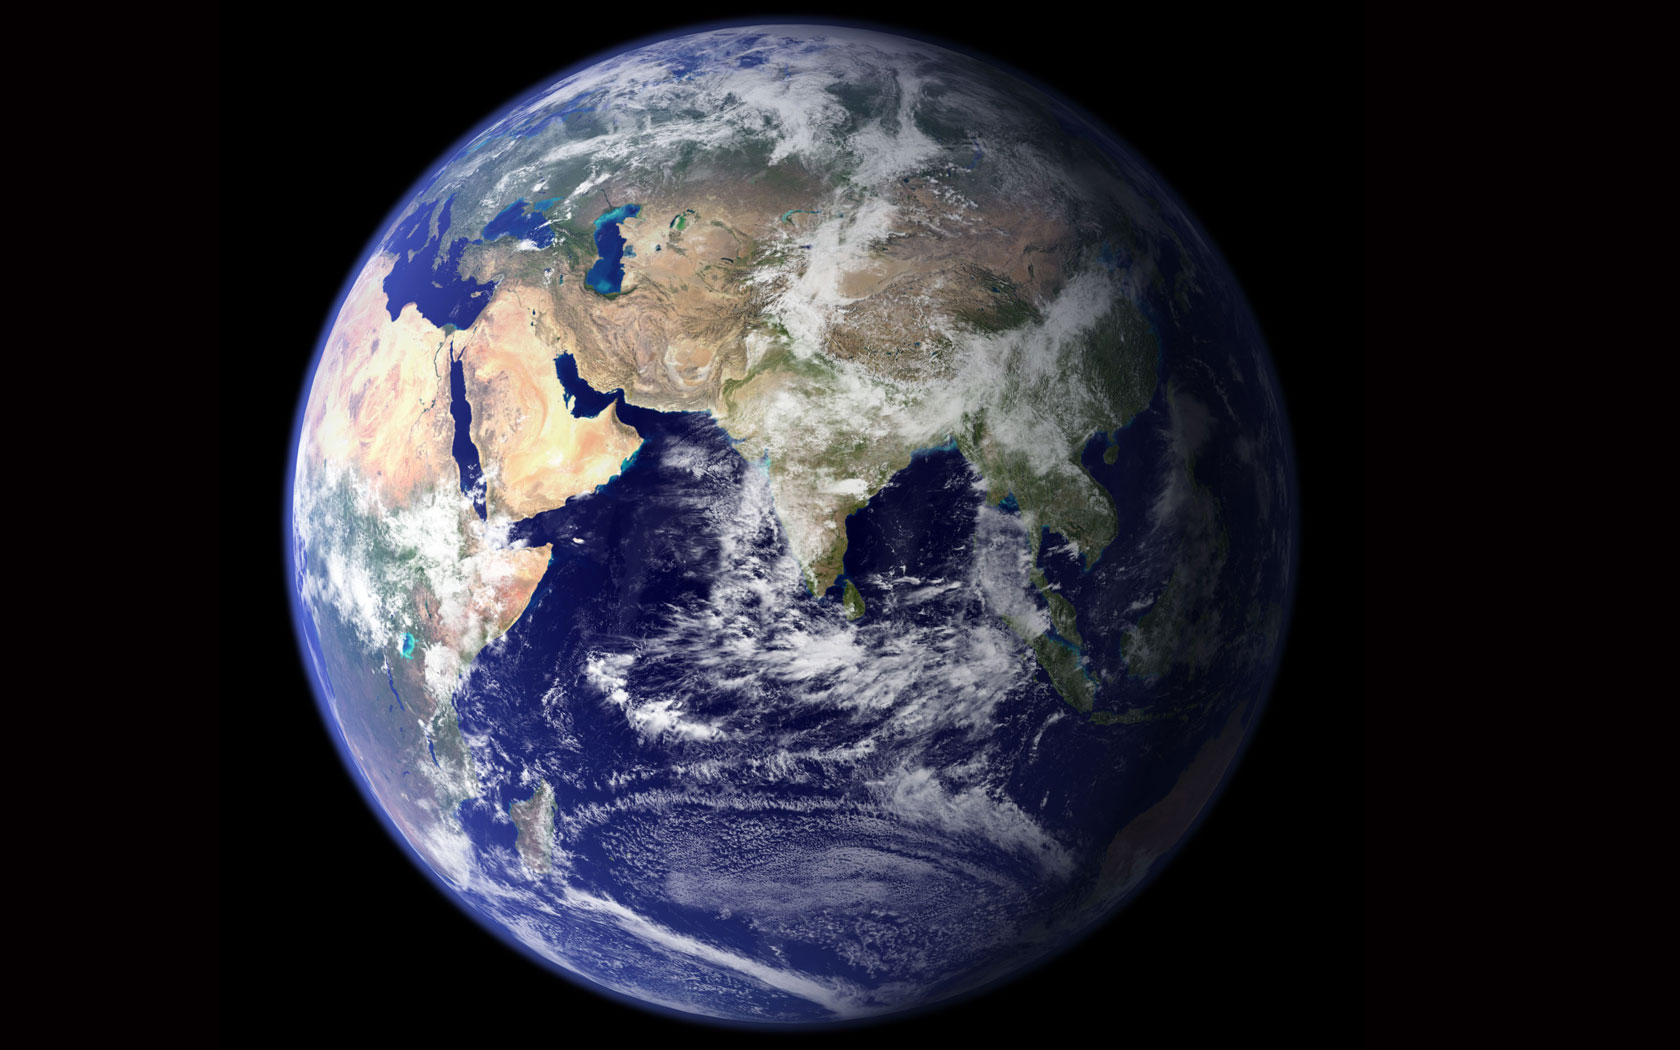 earth view from other planets - photo #32